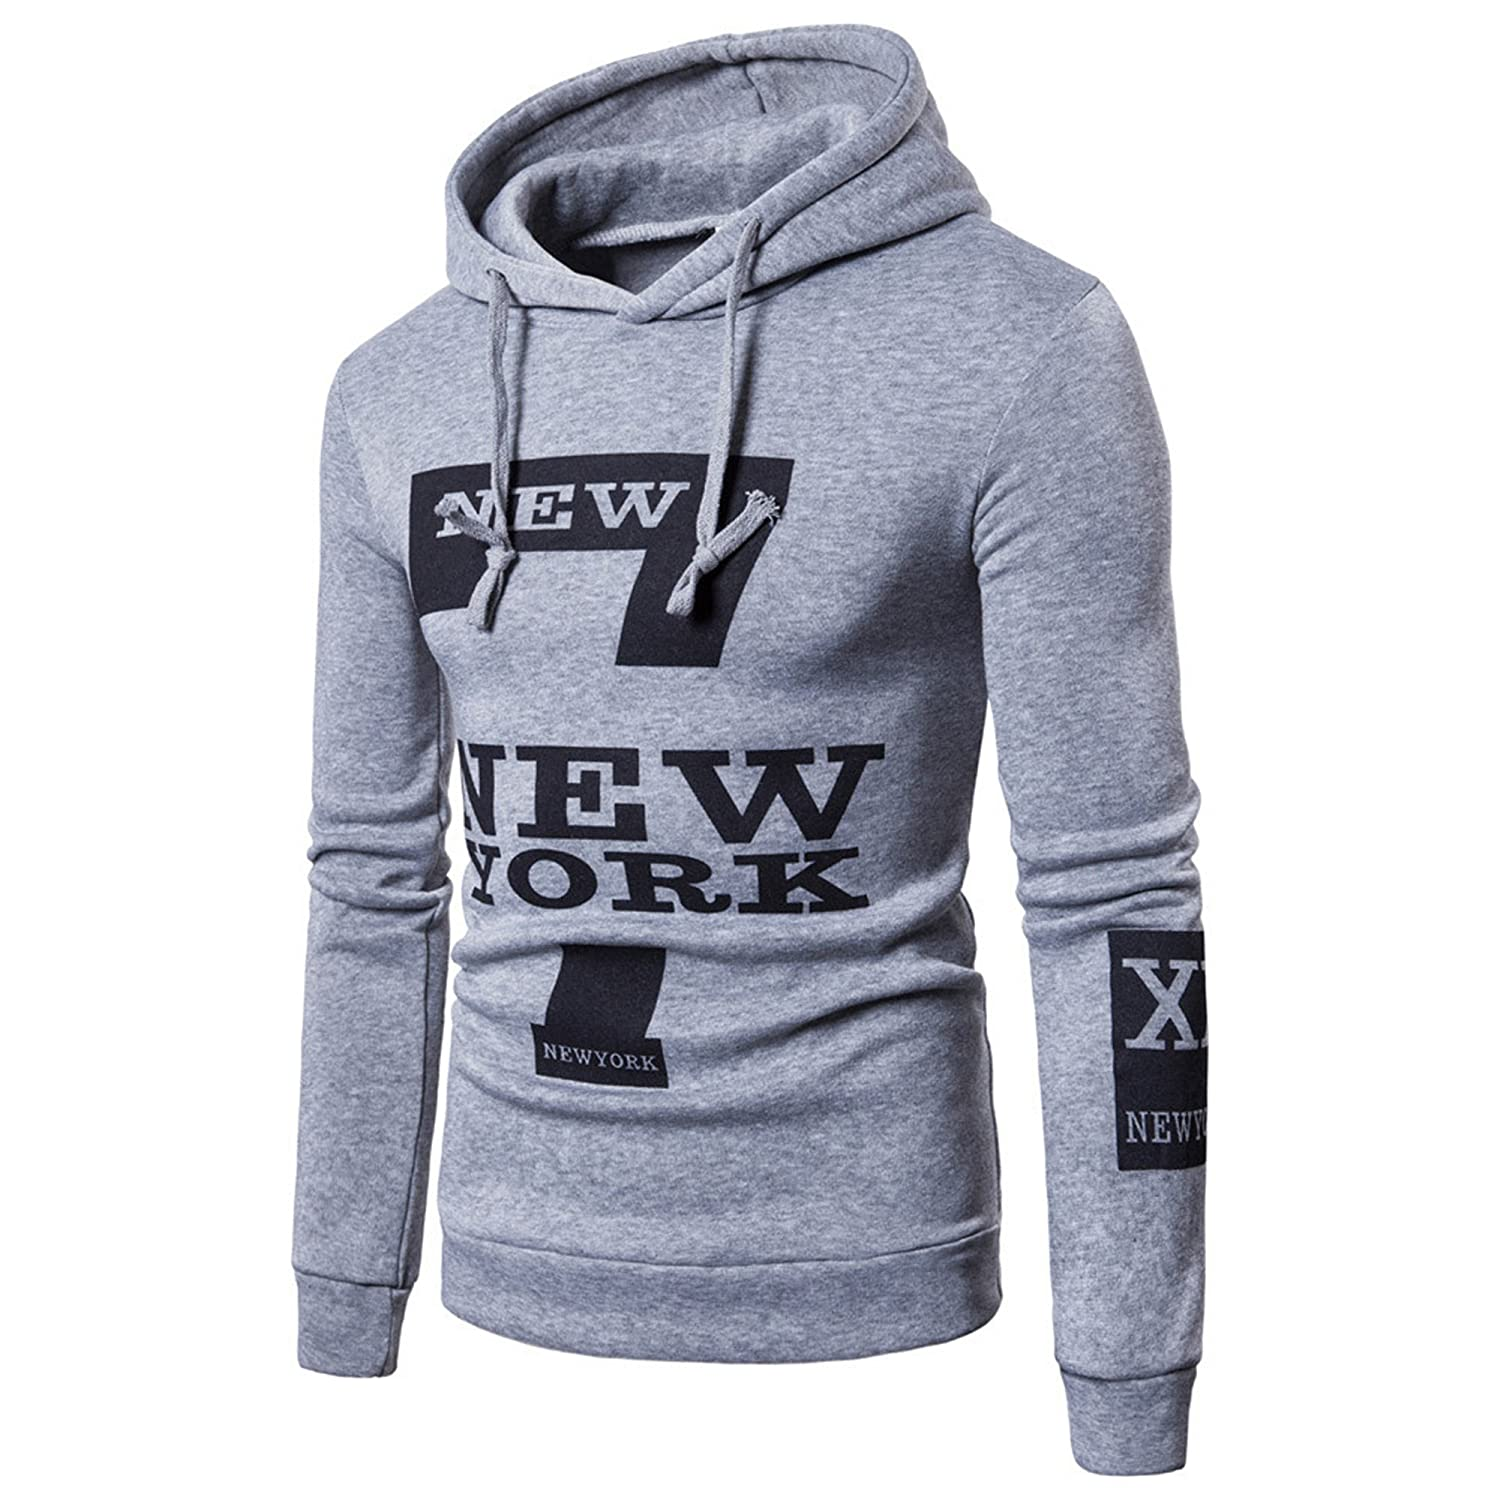 ❤️sfe, Clearance,Men Blouse,Men's Hooded Outwear,Winter Men Warm Printed New York Hoodie Hooded Sweatshirt Top Coat ❤️sfe Men' s Hooded Outwear